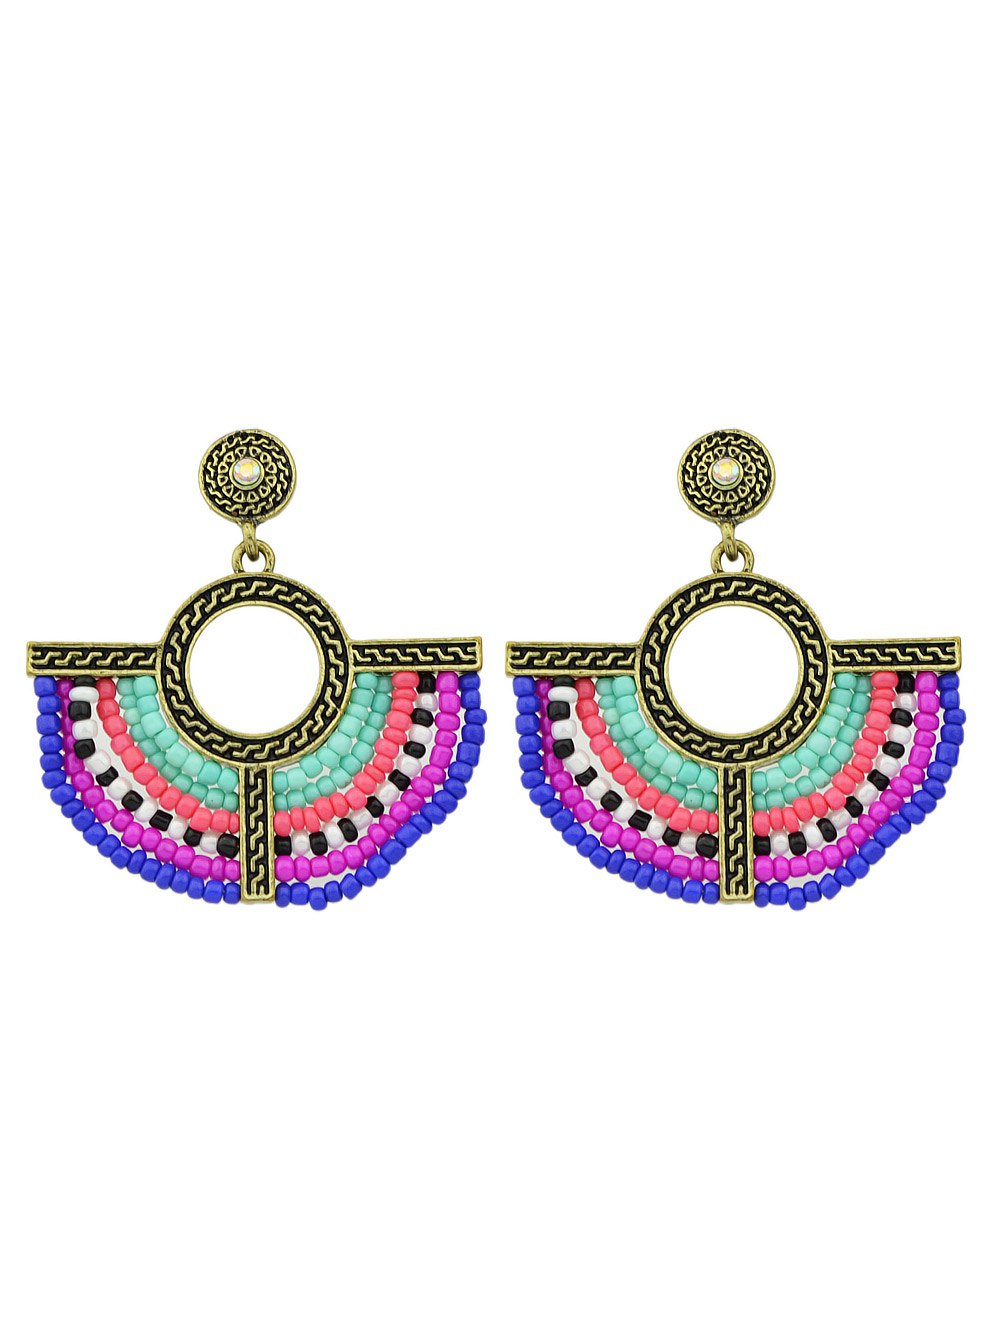 Bohemian Beads Circle Drop Earrings